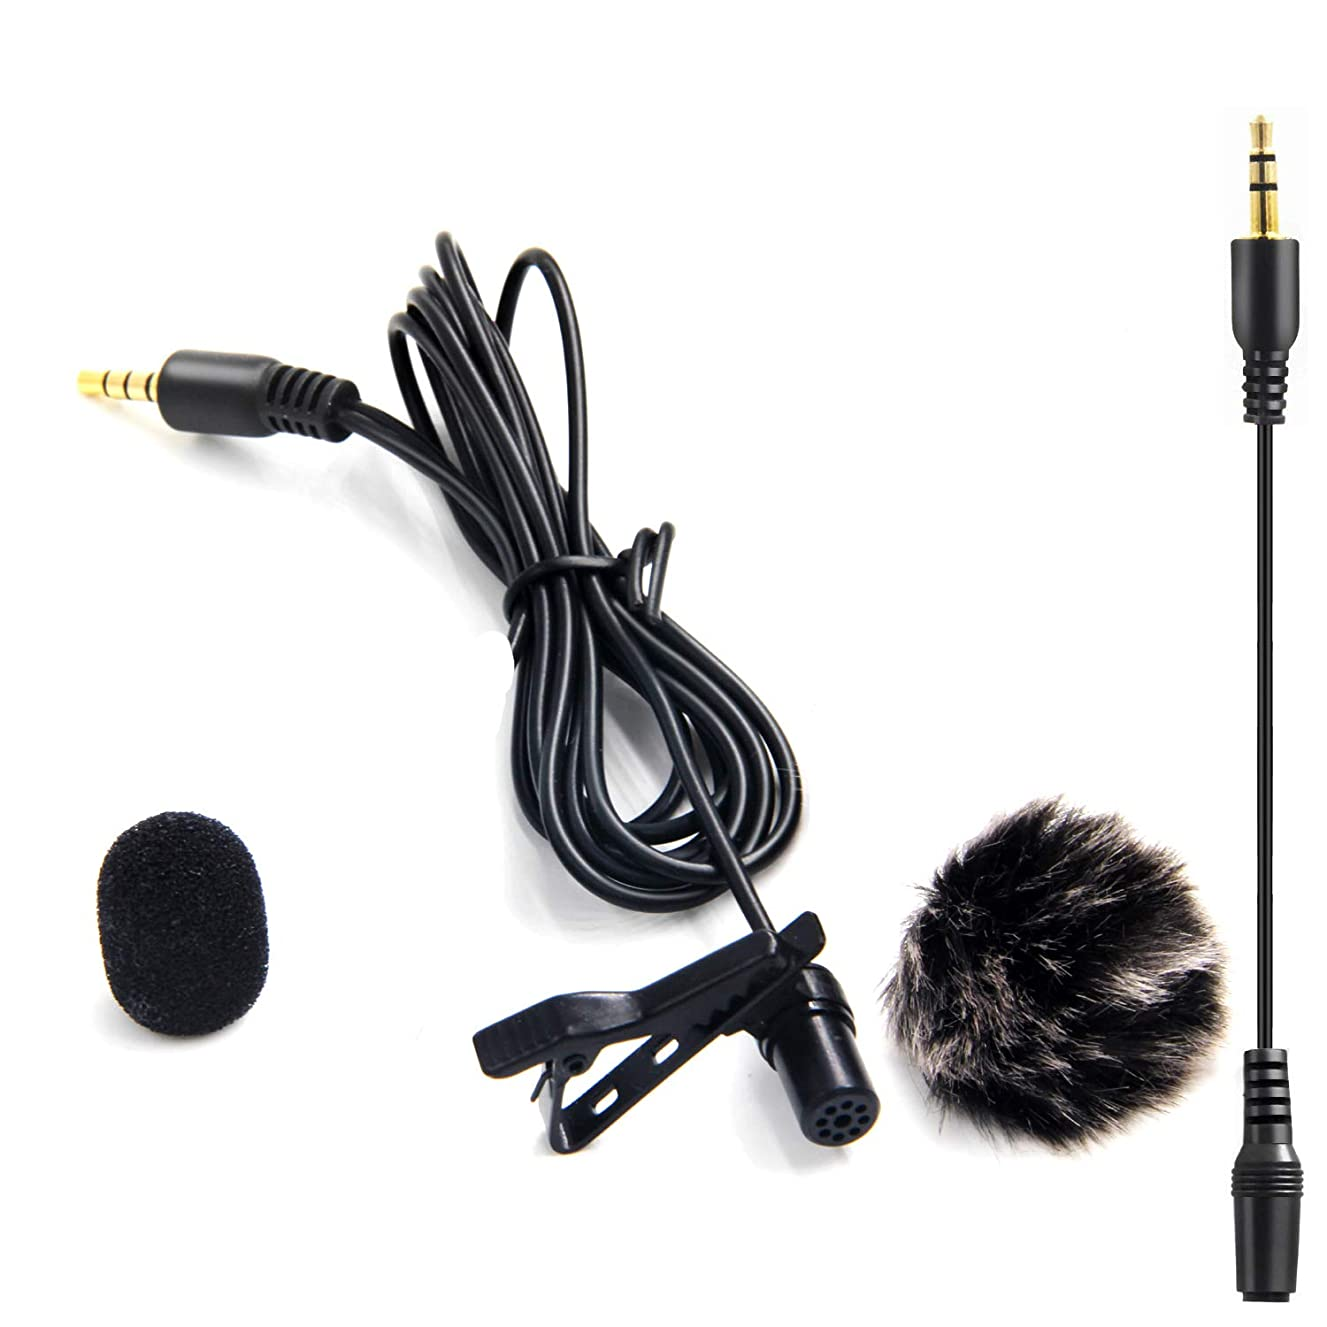 20FT Lavalier Microphone with 1 Windscreen Muff,Nicama LVM3 Lav Lapel Clip-On Mic for DSLR Camera Canon Nikon Camcorder Audio Recorders Smartphones iPhone PC Podcast